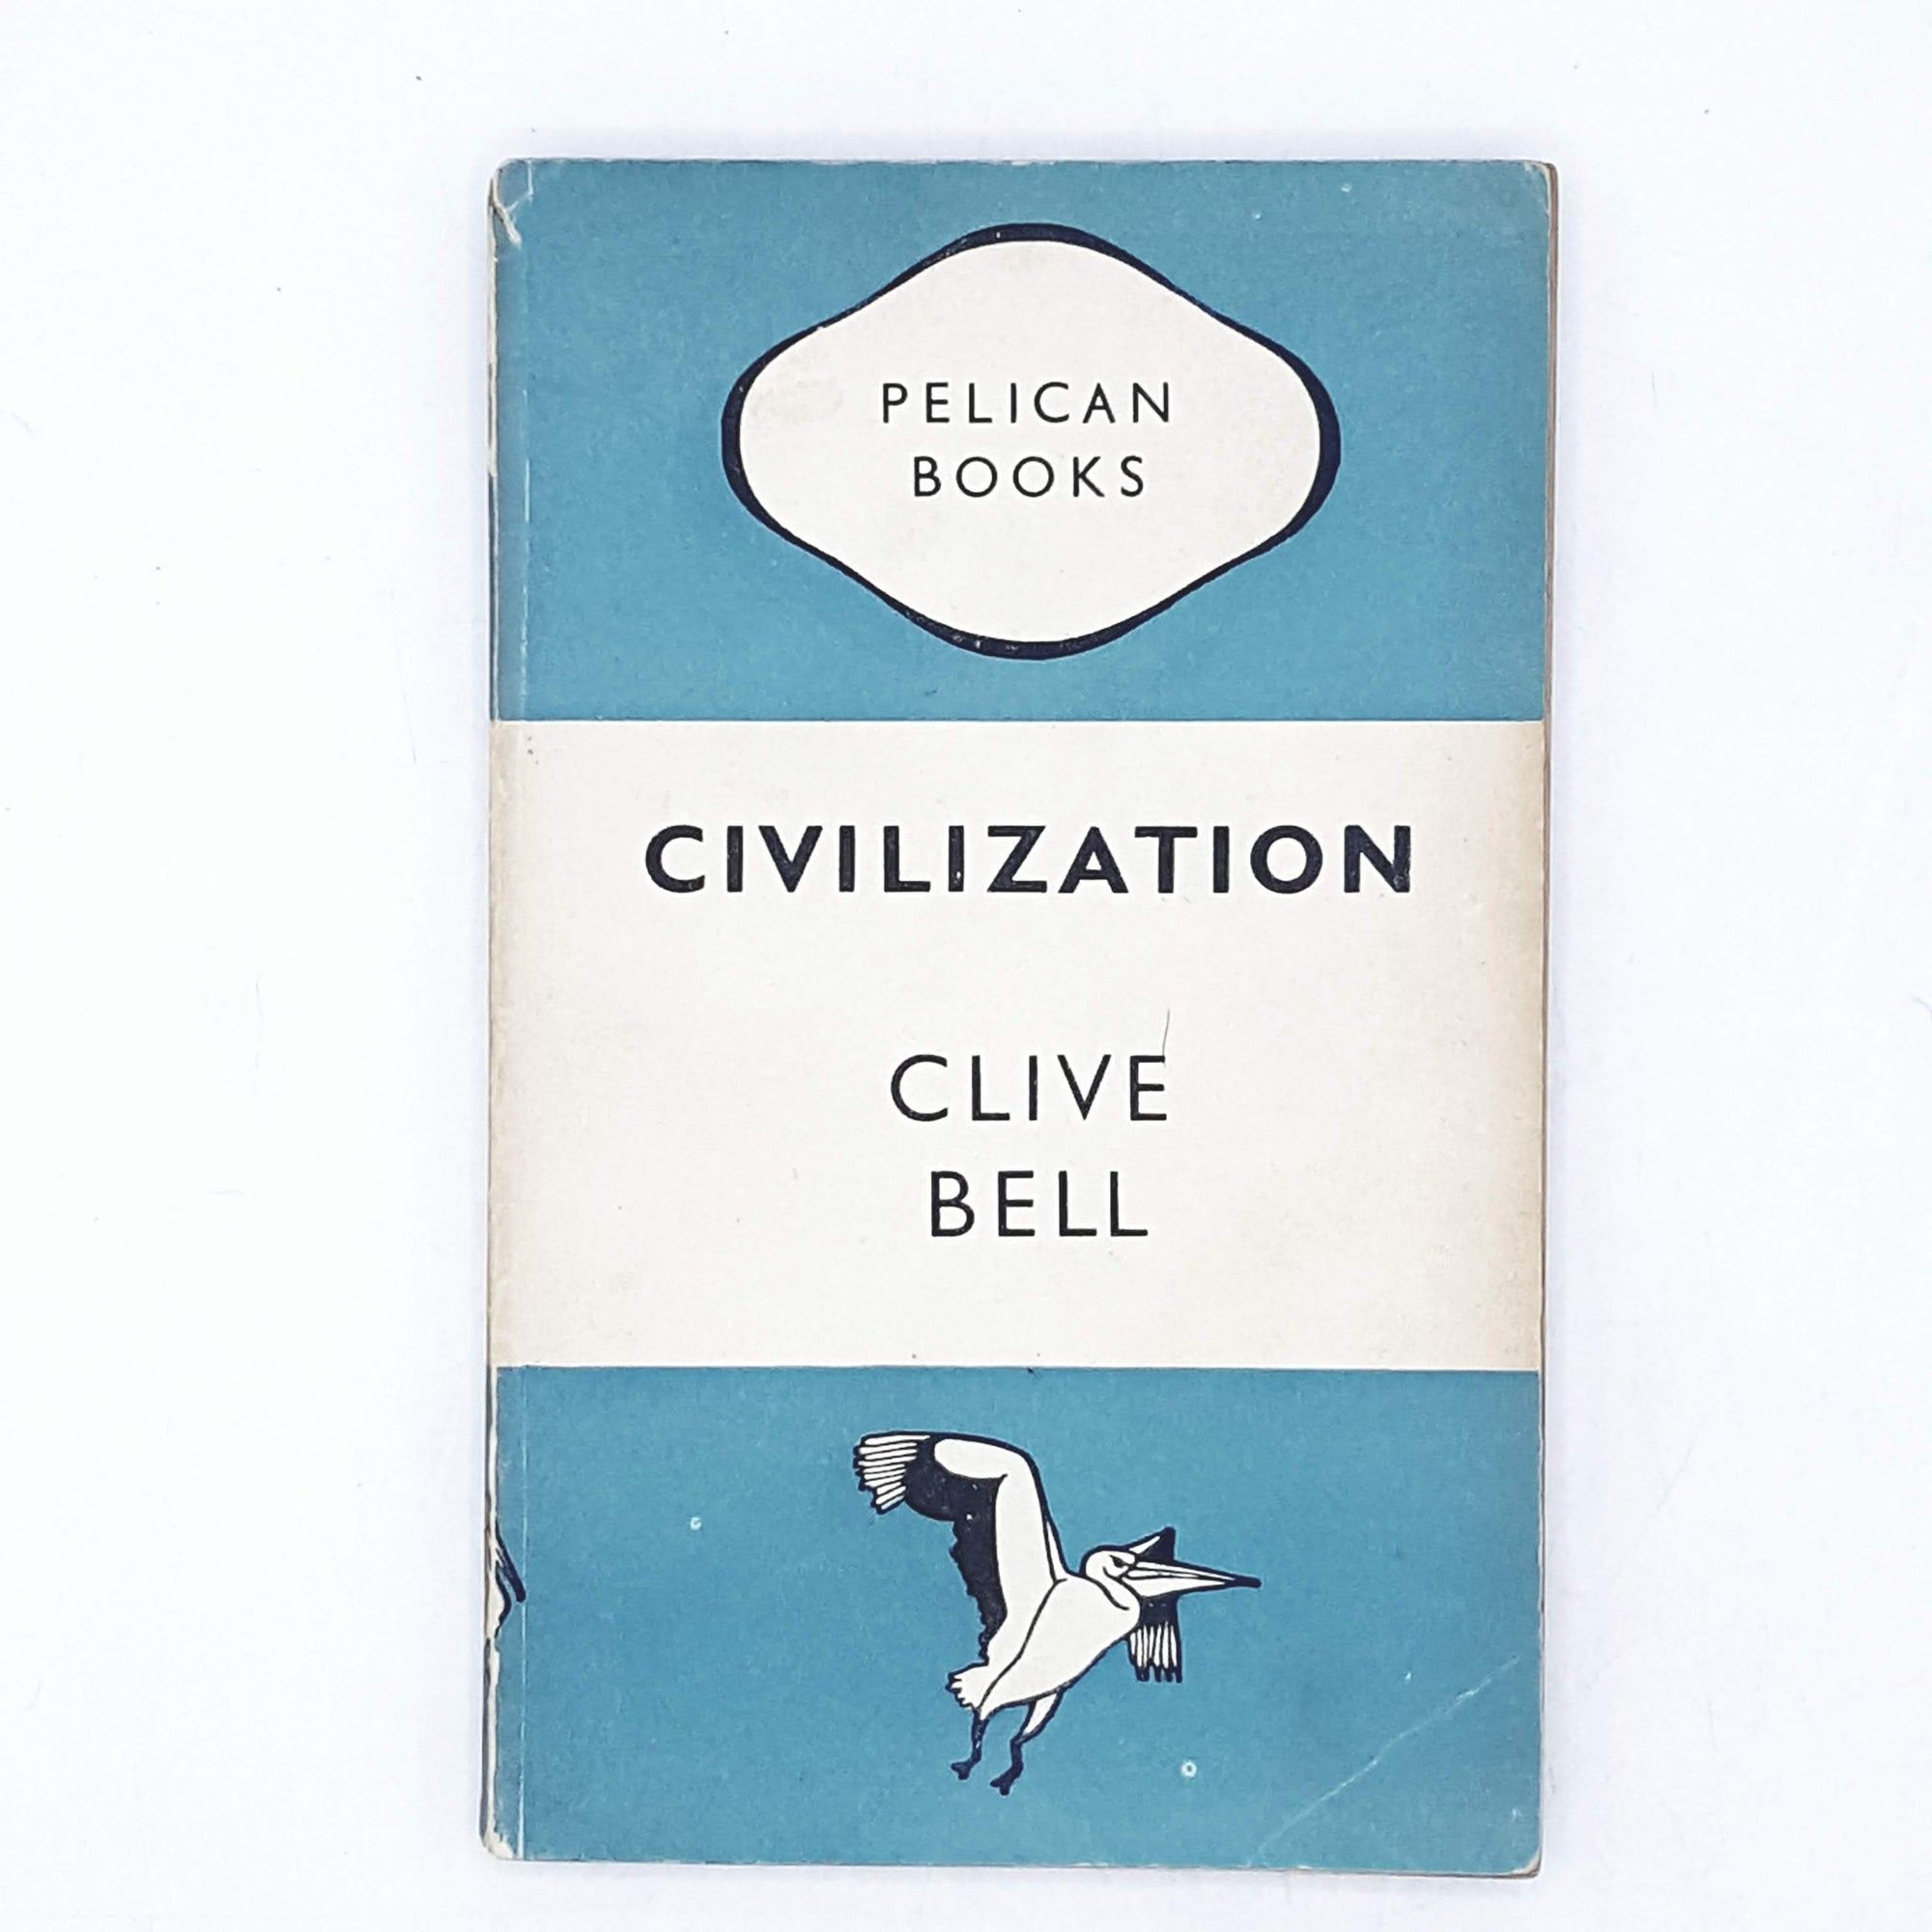 Civilization by Clive Bell 1947